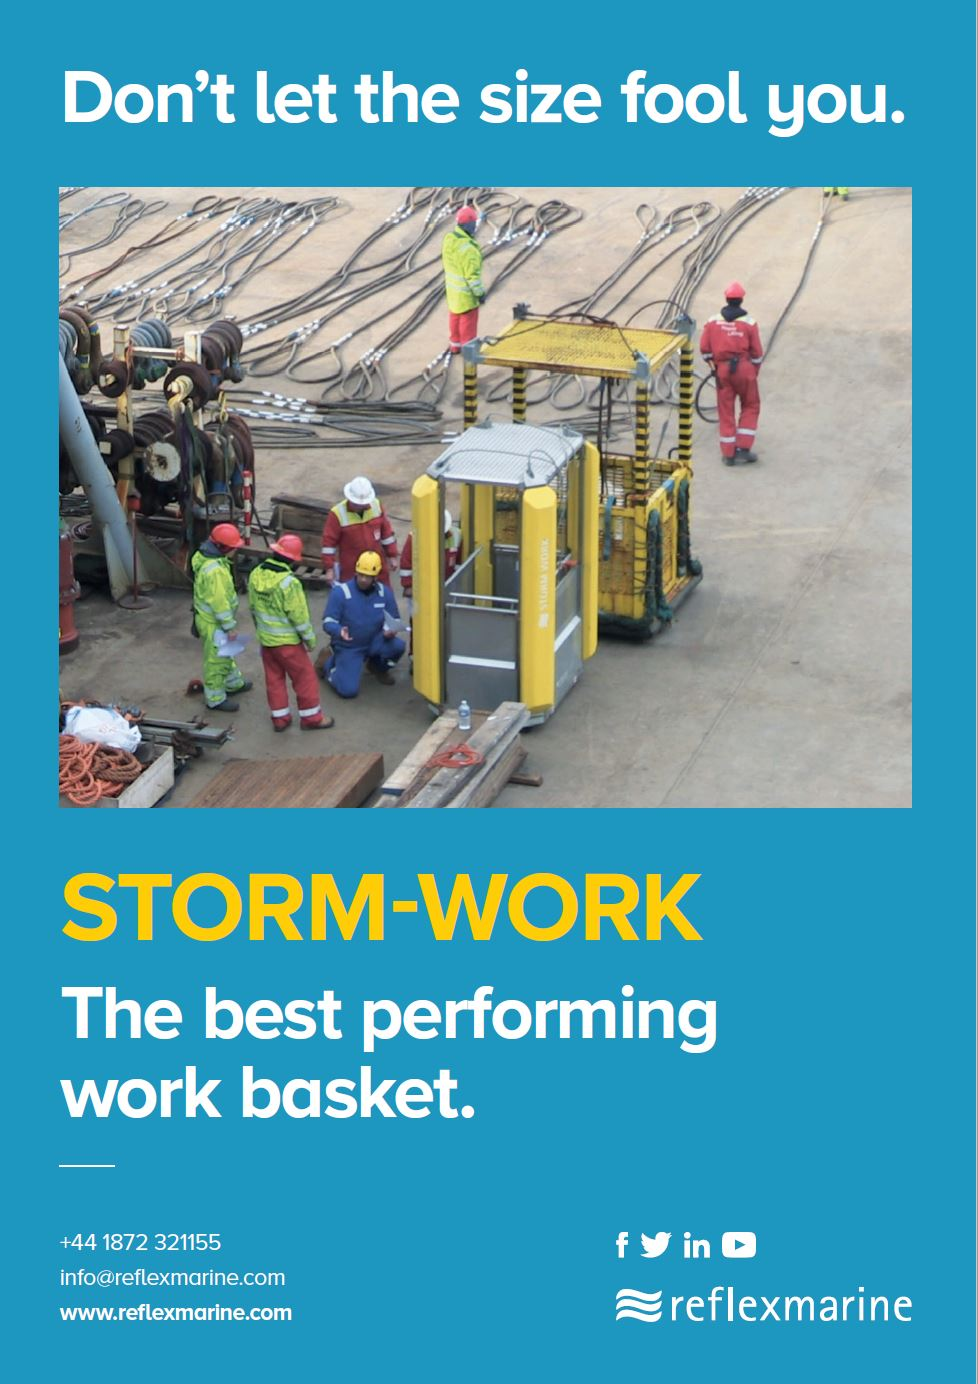 Read STORM-WORK Featured in Oil and Gas AustralAsia Magazine